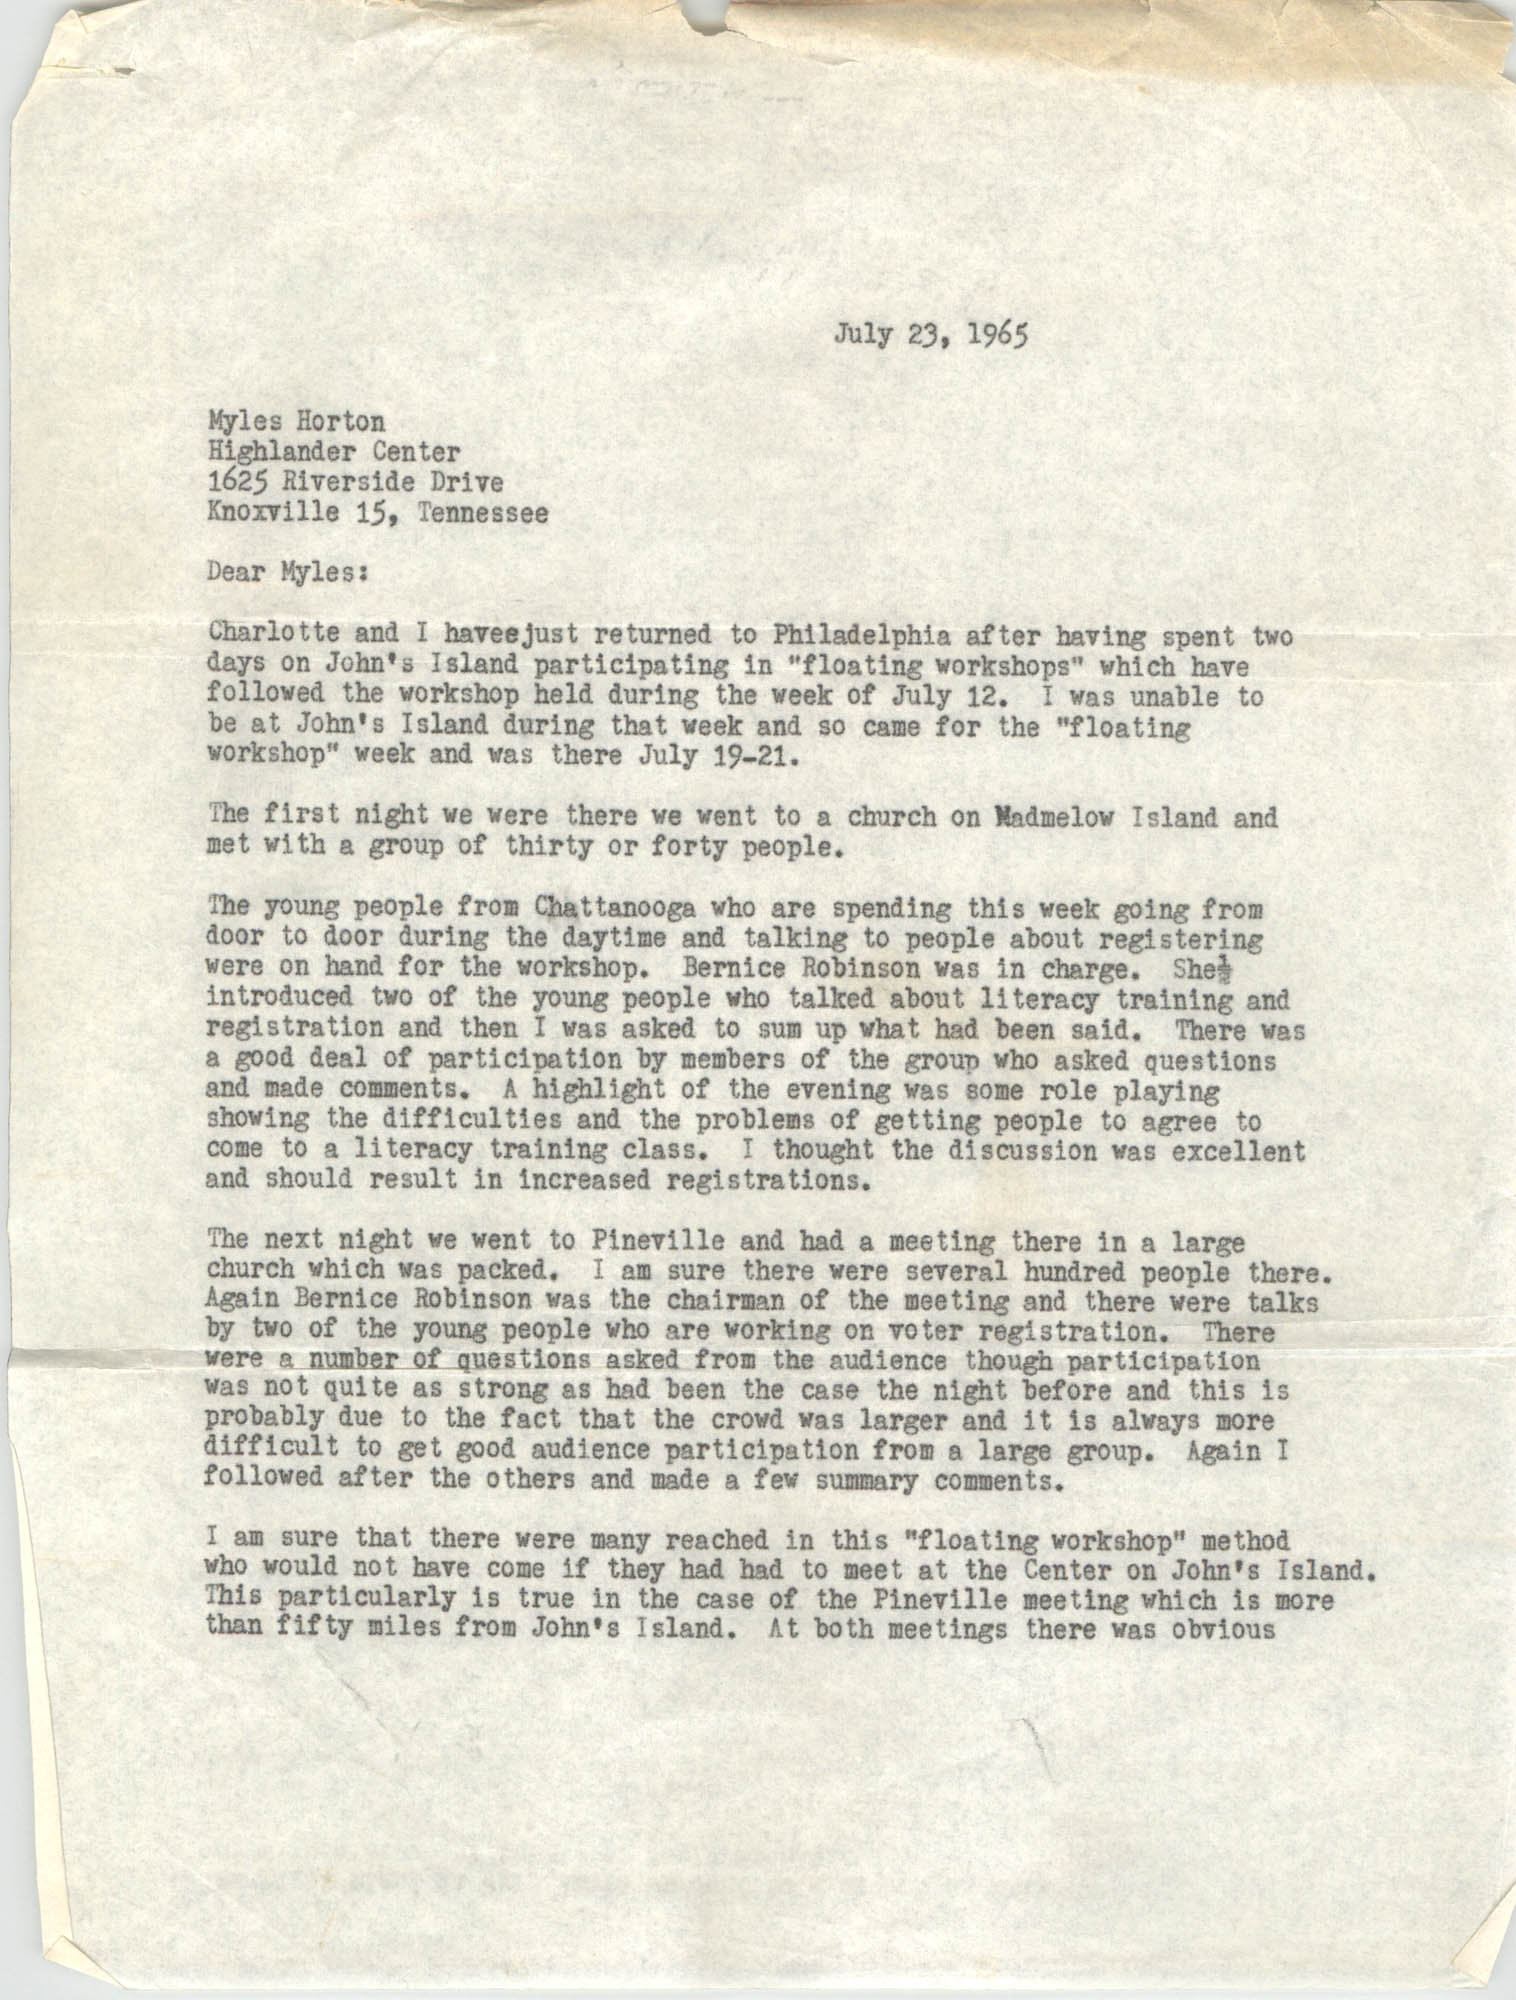 Letter from Stewart Meacham to Myles Horton, July 23, 1965